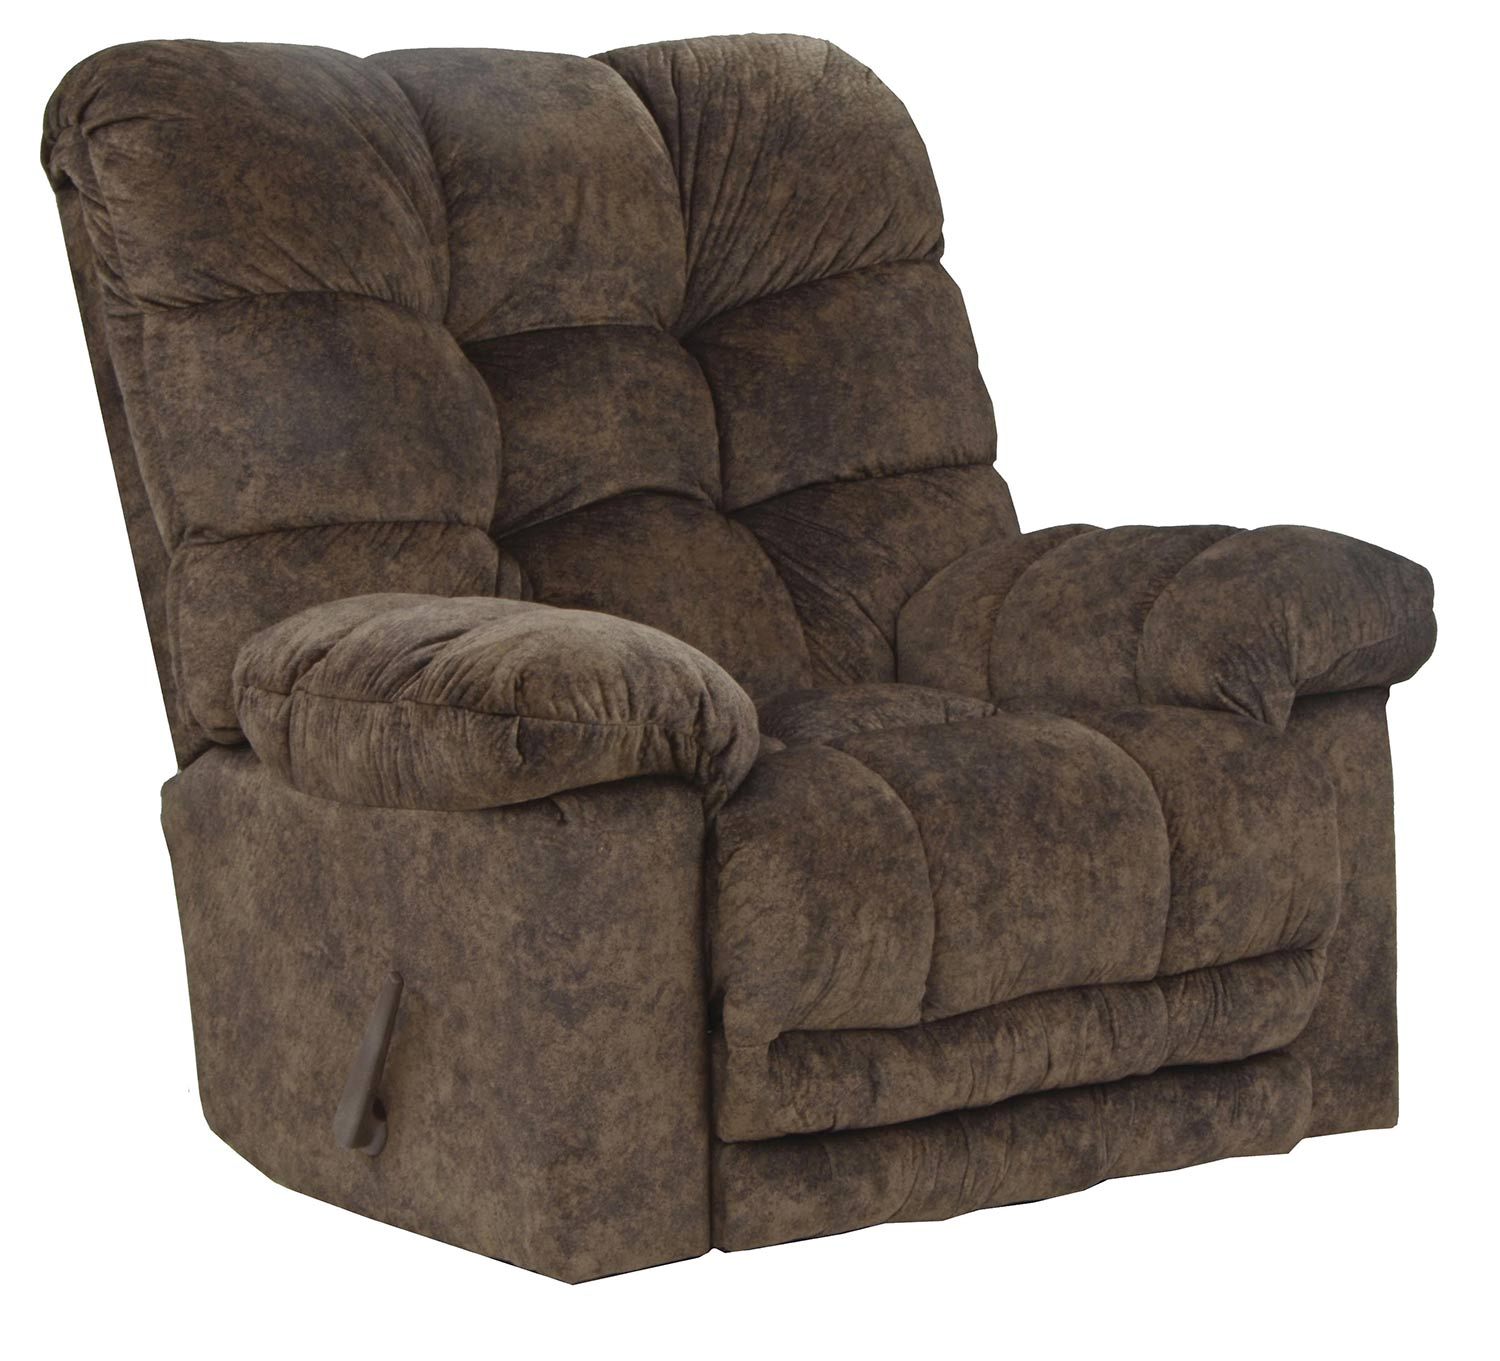 CatNapper Bronson Recliner Chair - Chestnut